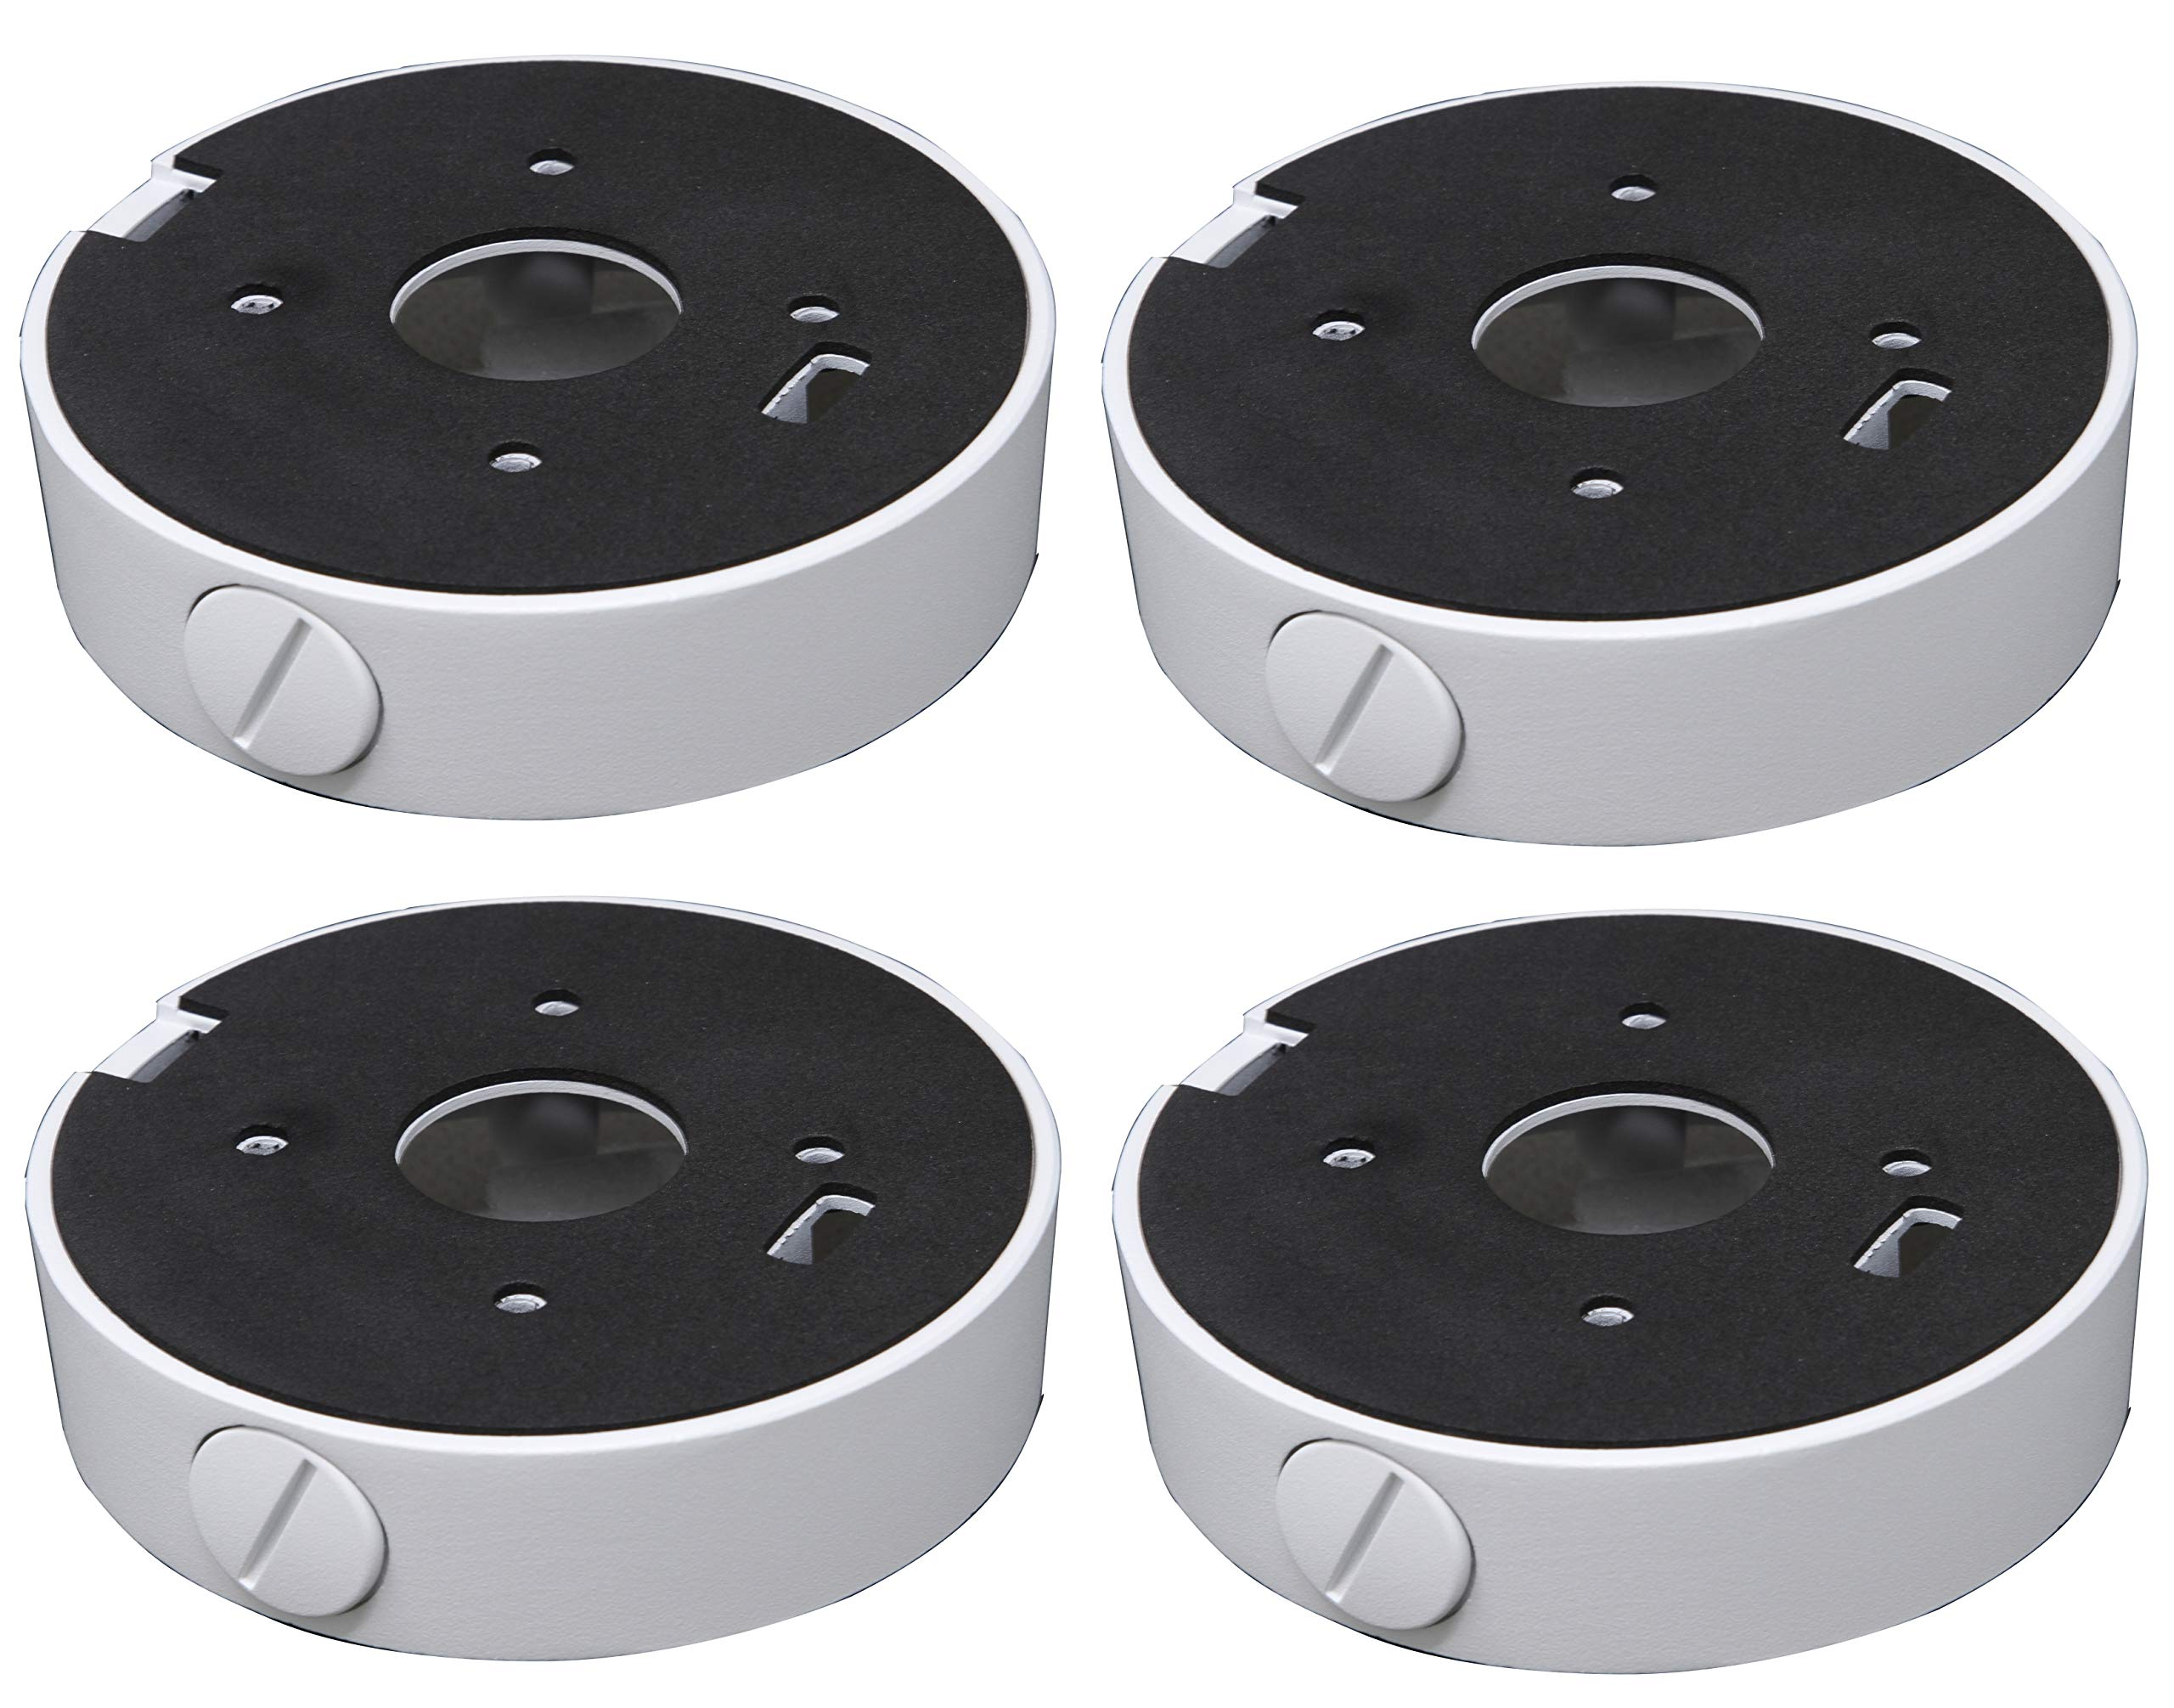 Mounting Bracket Junction Box Base Mount DS-1280ZJ-M for Hikvision Turret Camera DS-2CD23x2 White 4 Pack by AmSecu